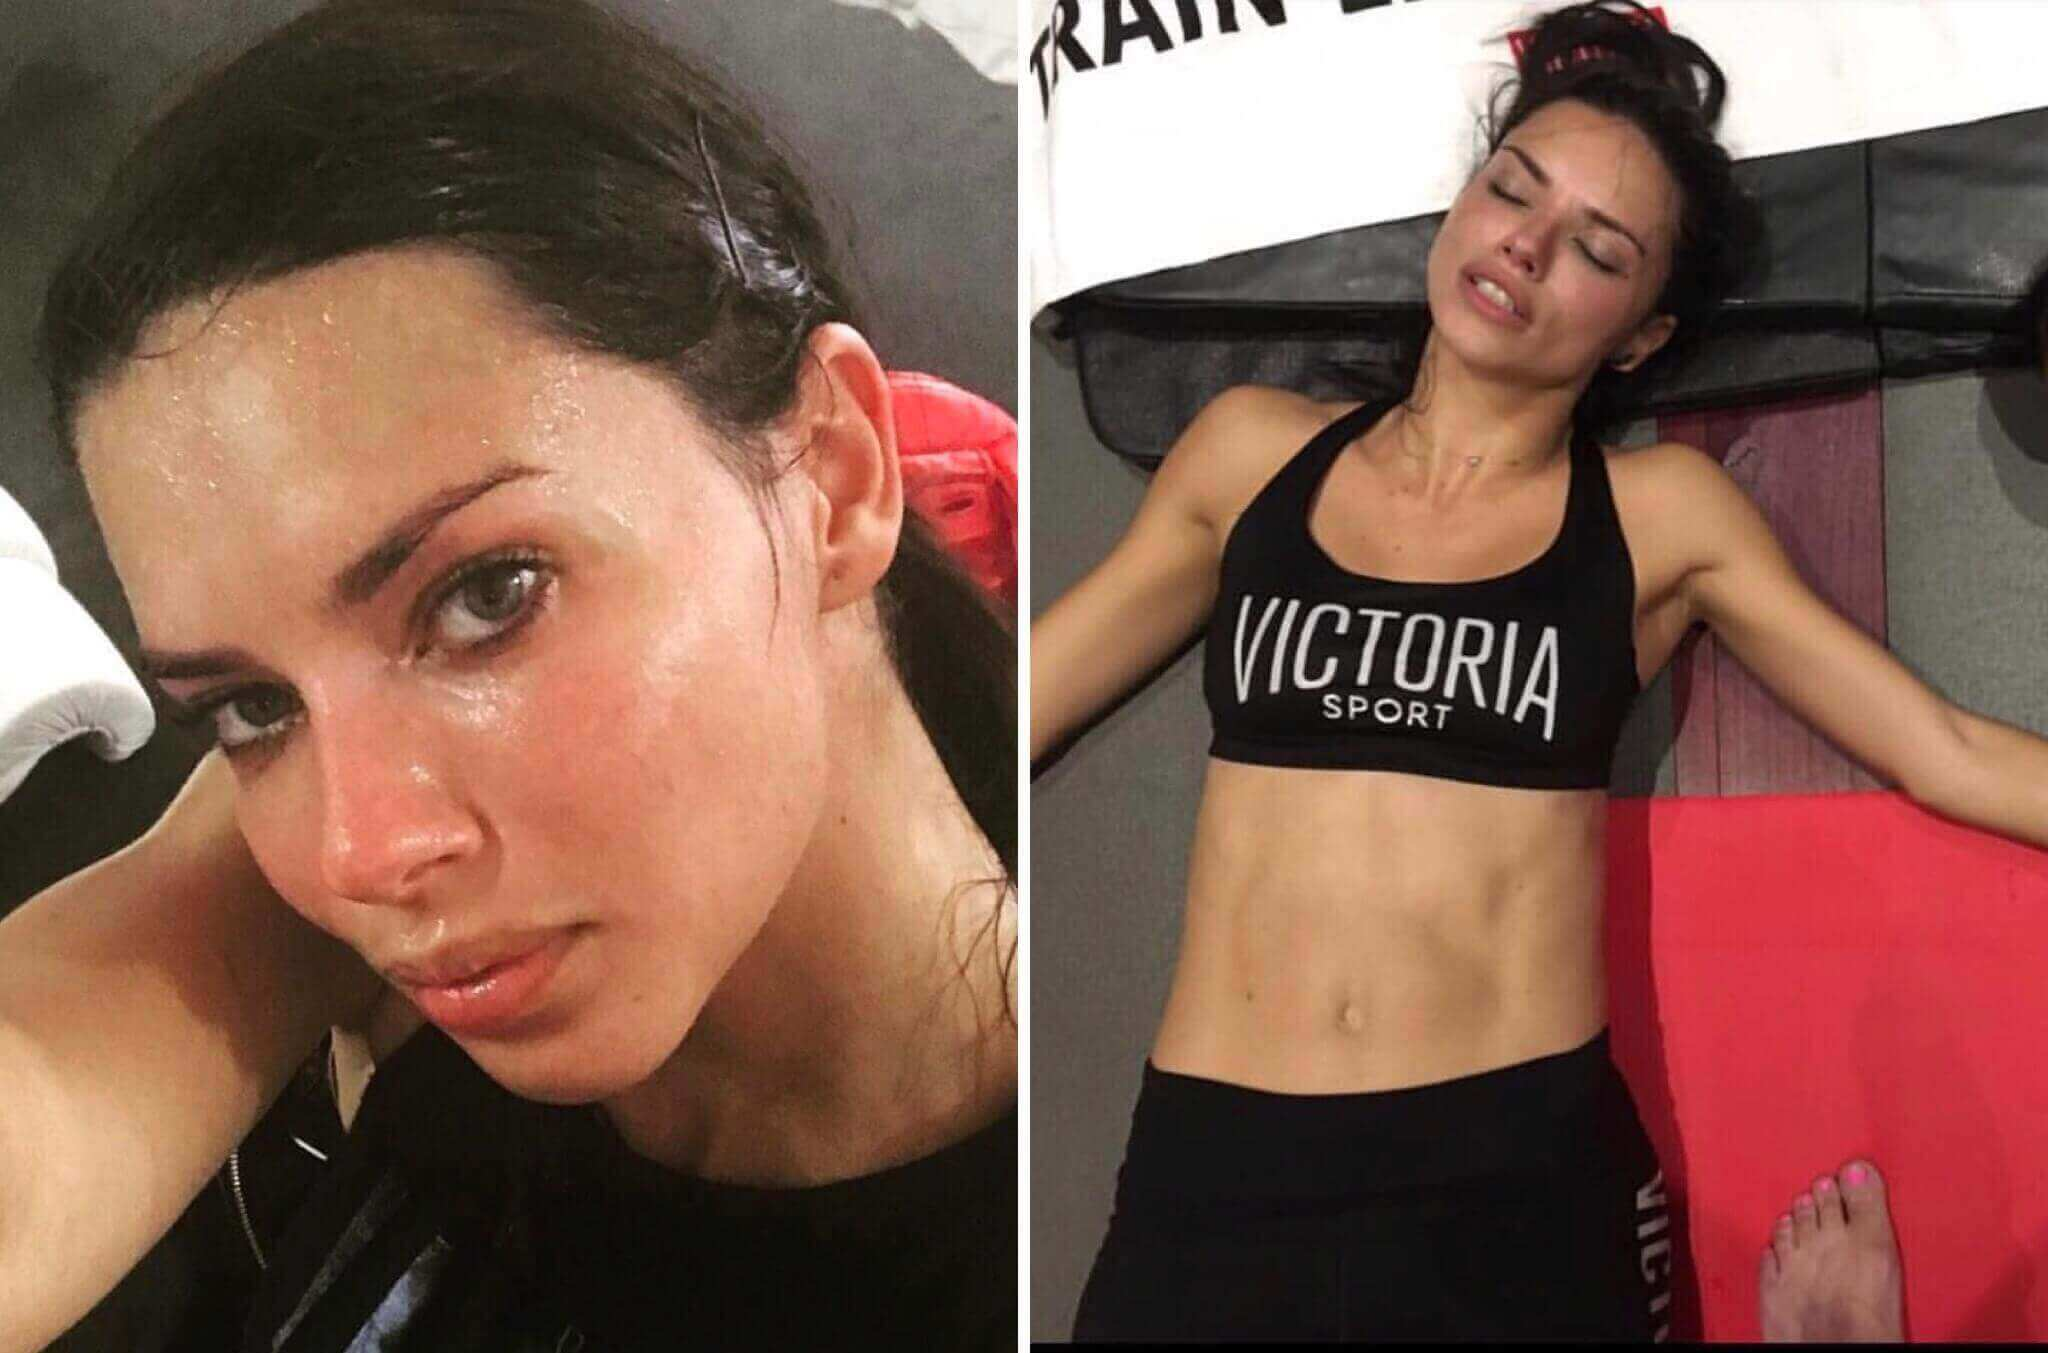 adriana diet and exercise plan